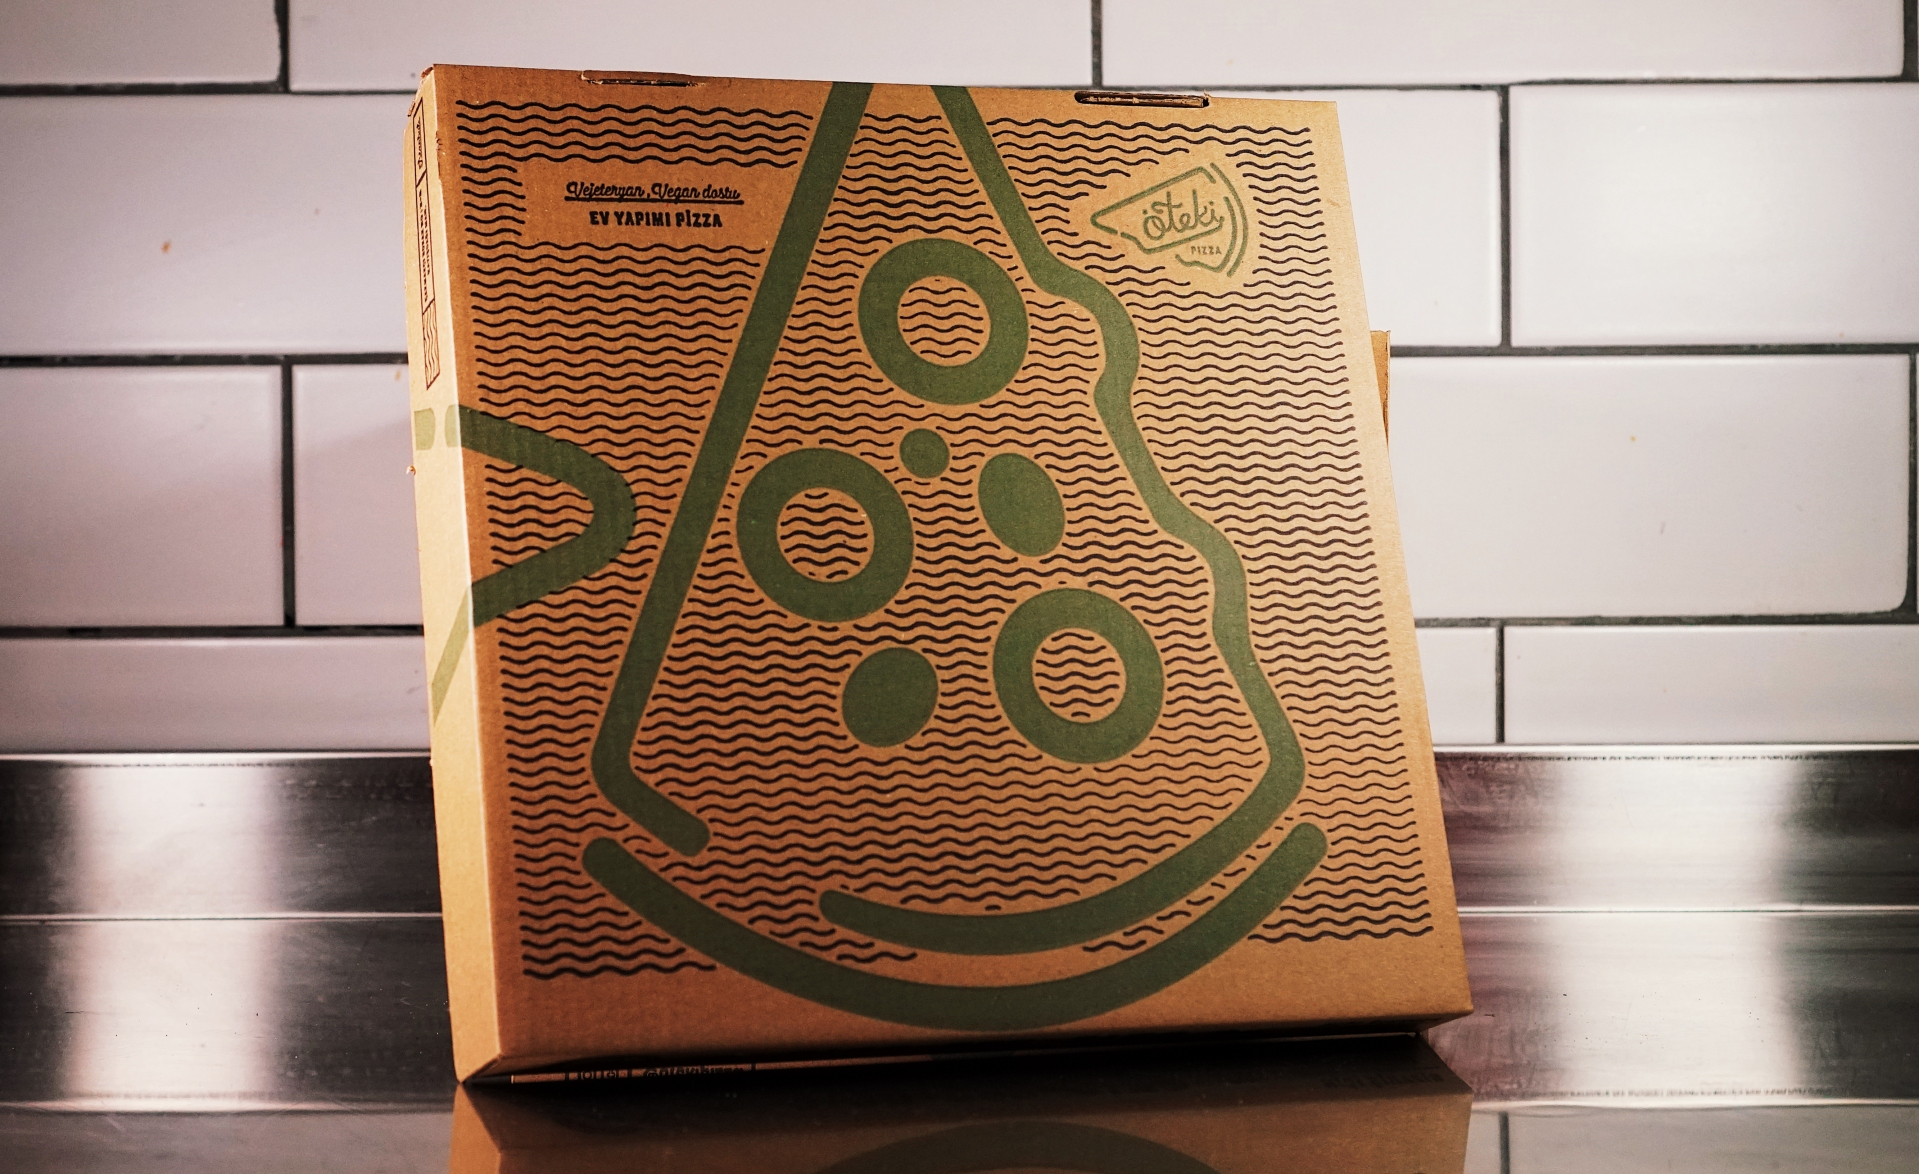 pizza-oteki-zeki-michael-box-design-designer-packaging-food-new-york-colorado-us-london-istanbul-tasarim-freelance-agency-slice.jpg